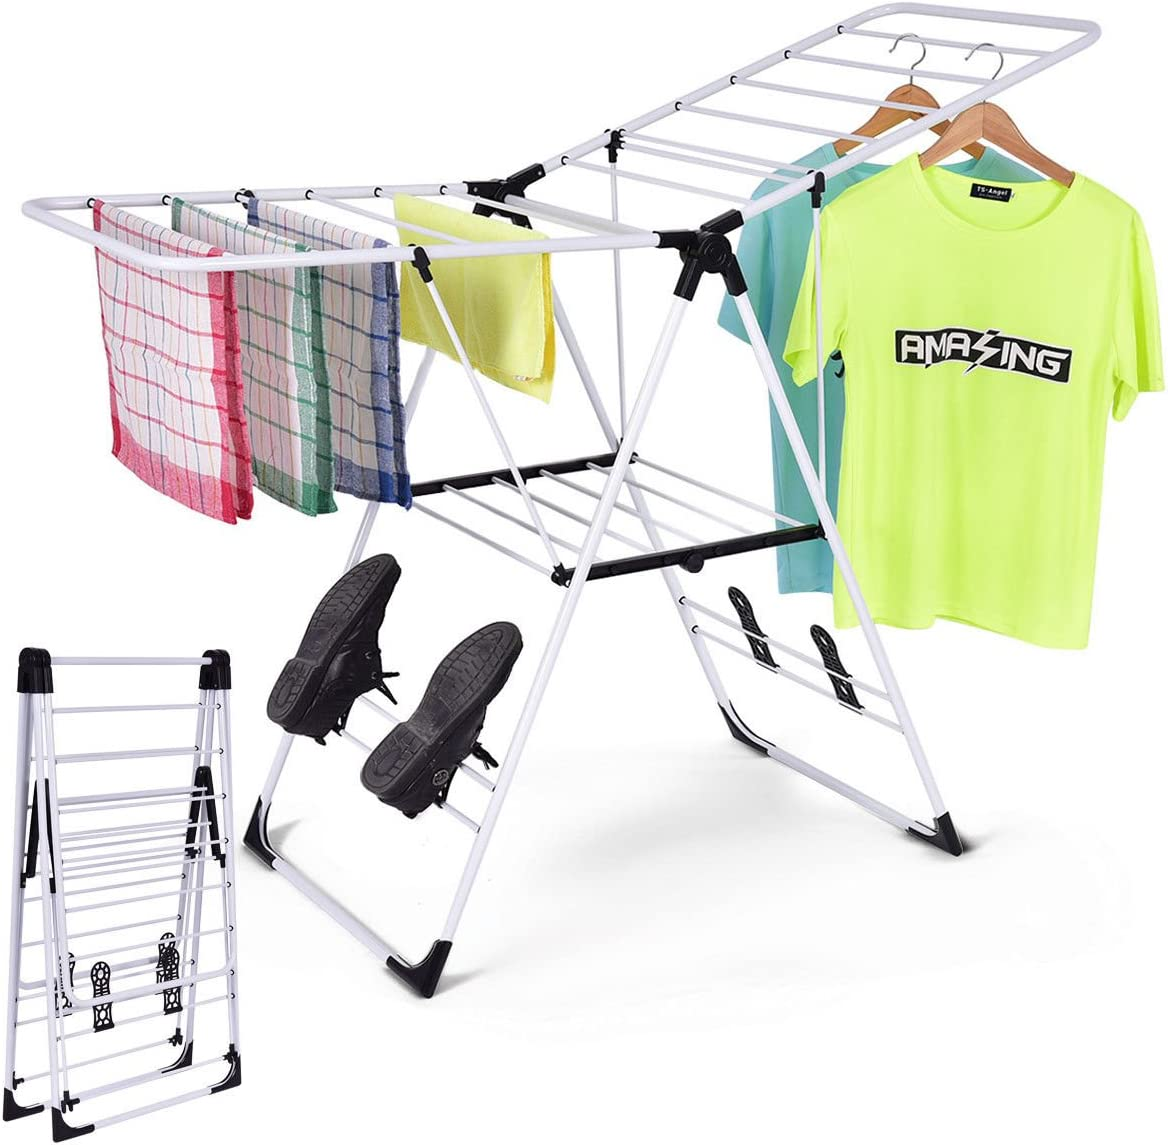 Amazon Com Laundry Clothes Storage Drying Rack Portable Folding Dryer Hanger Heavy Duty Sports Outdoors